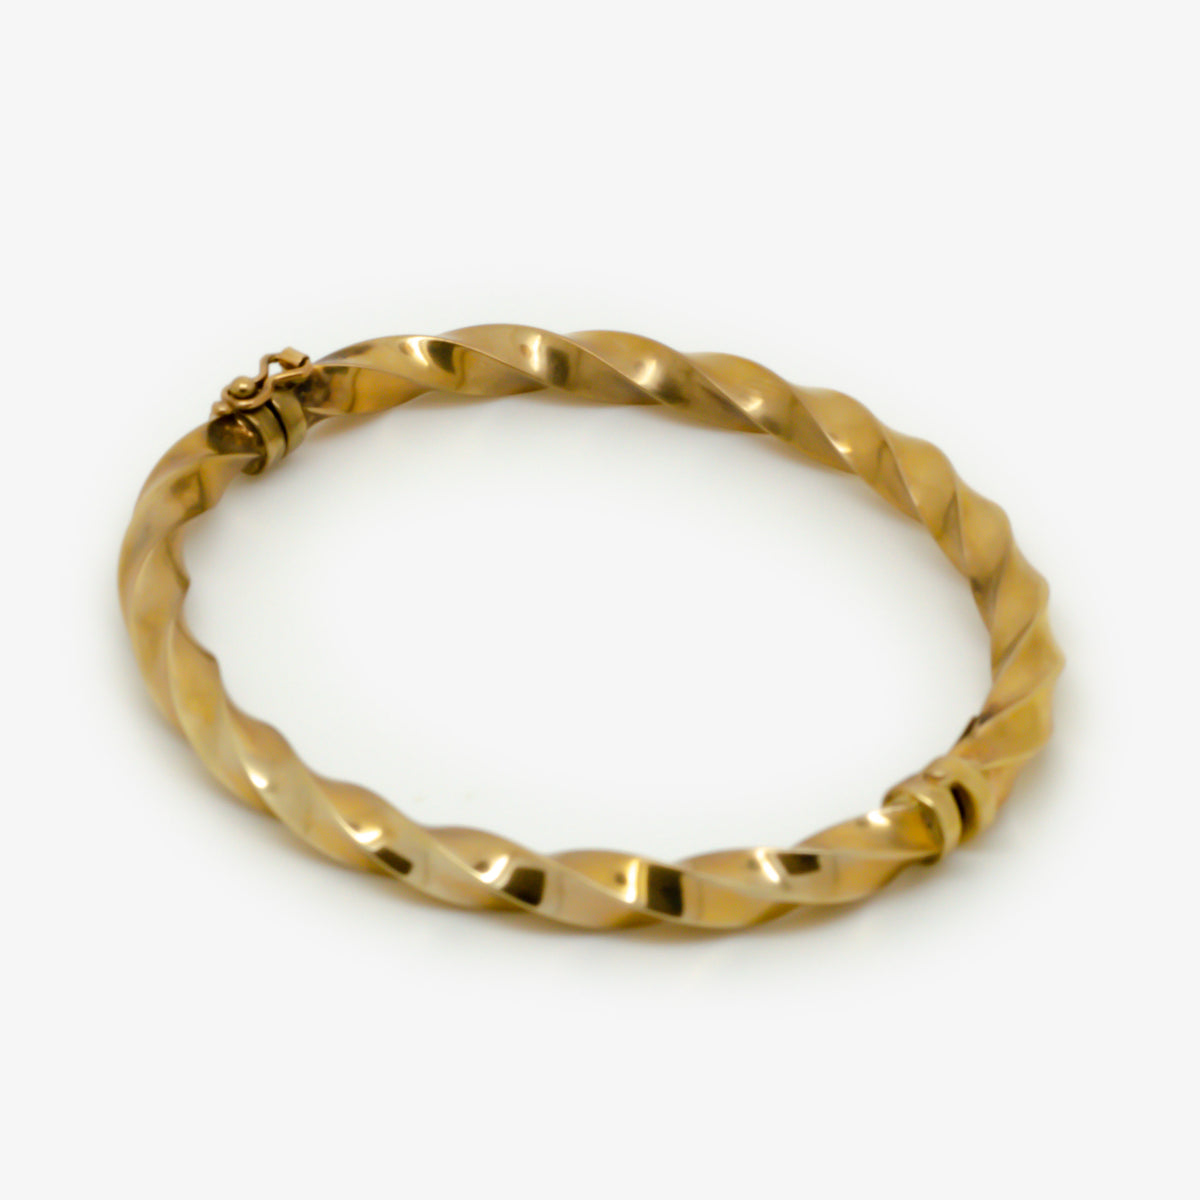 Twisted Gold Bangle Bracelet